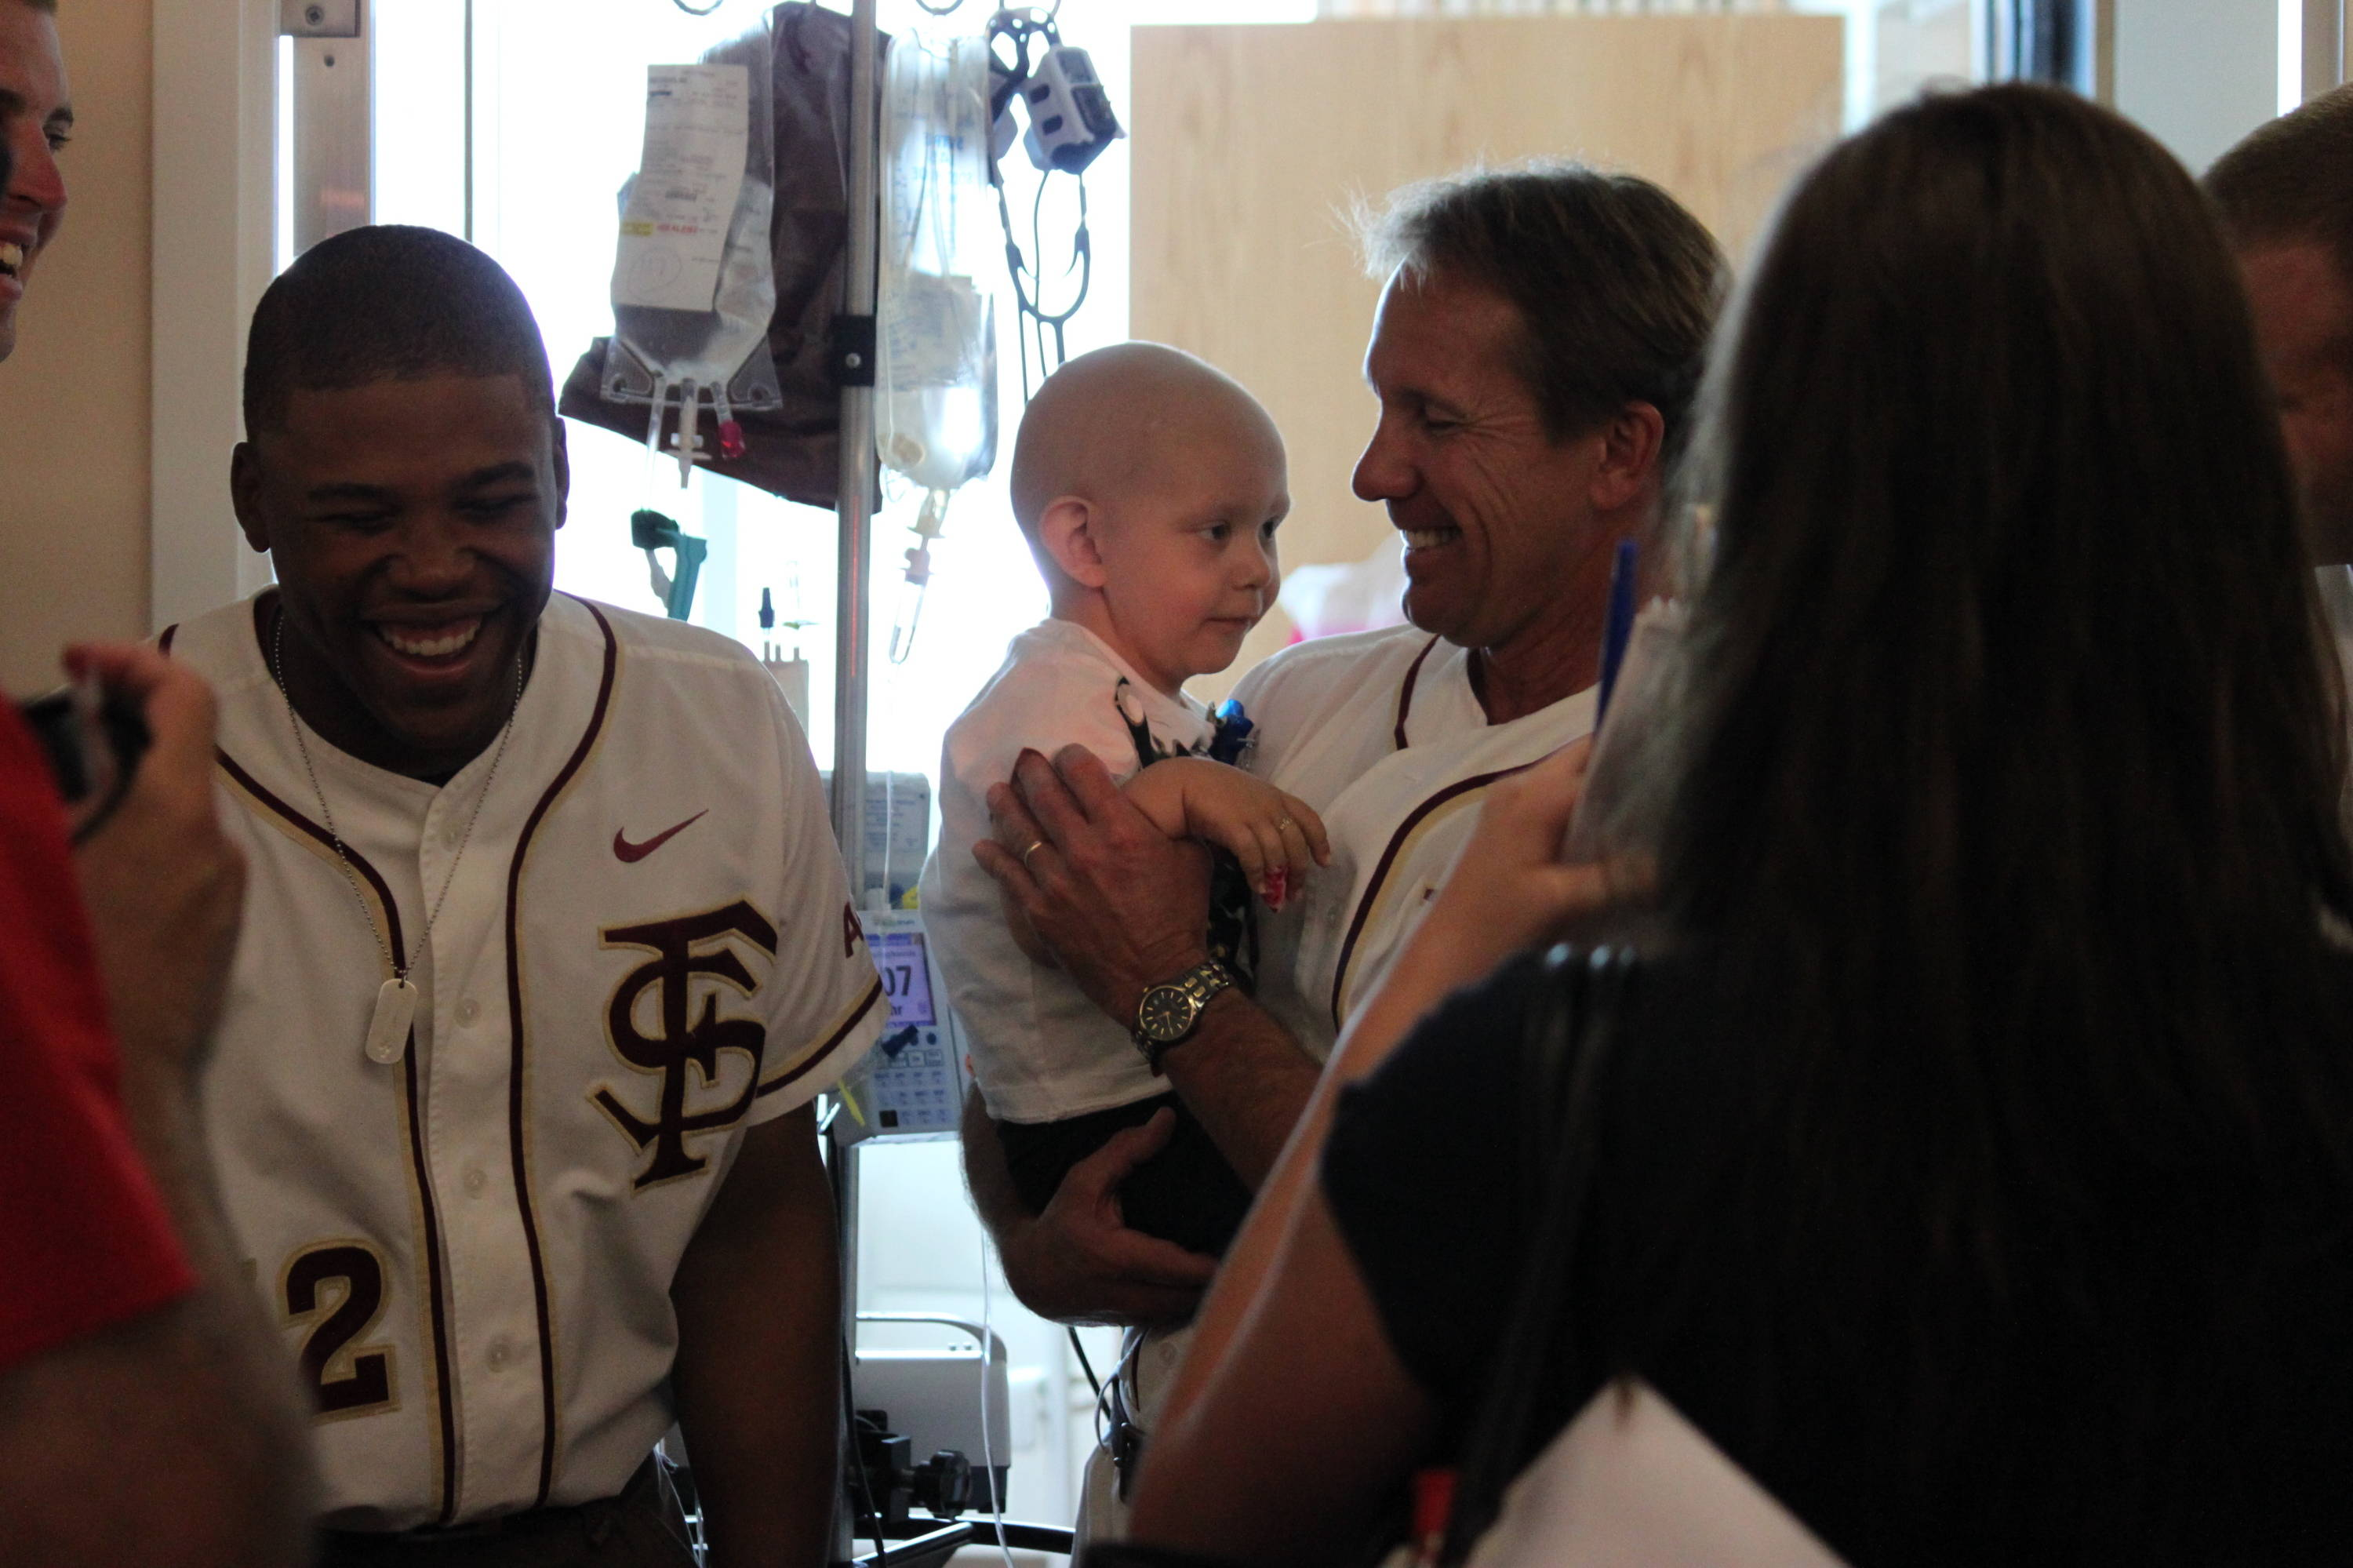 Sherman Johnson and associate head coach Jamey Shouppe making friends with a young Seminole fans during the team's visit to the Children's Hospital